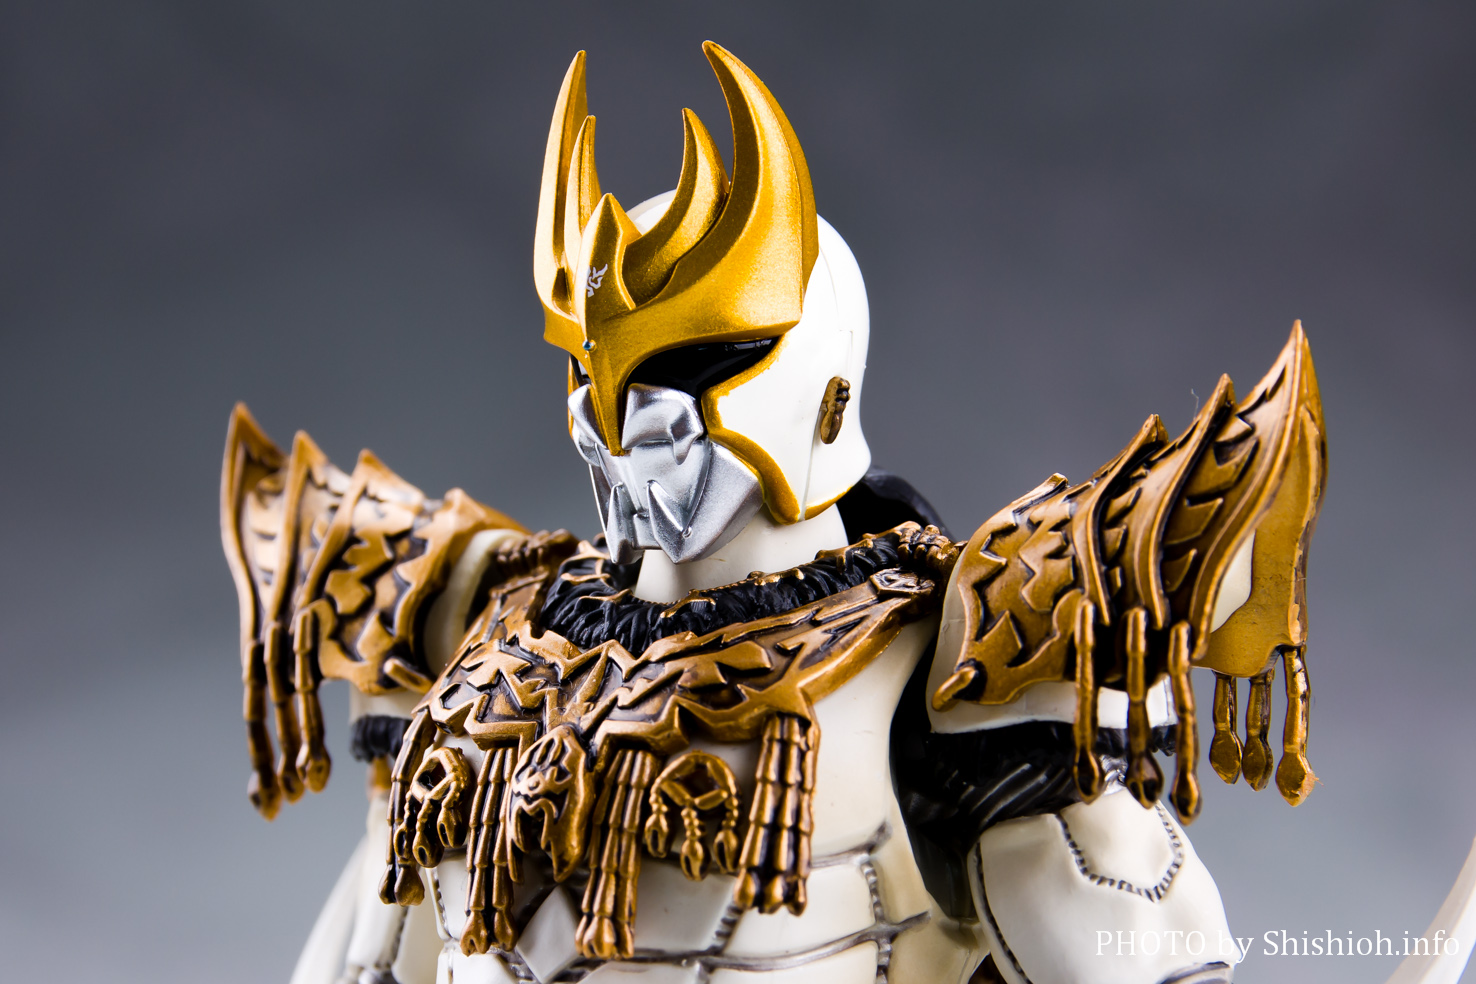 S.H.Figuarts(真骨彫製法) ン・ダグバ・ゼバ